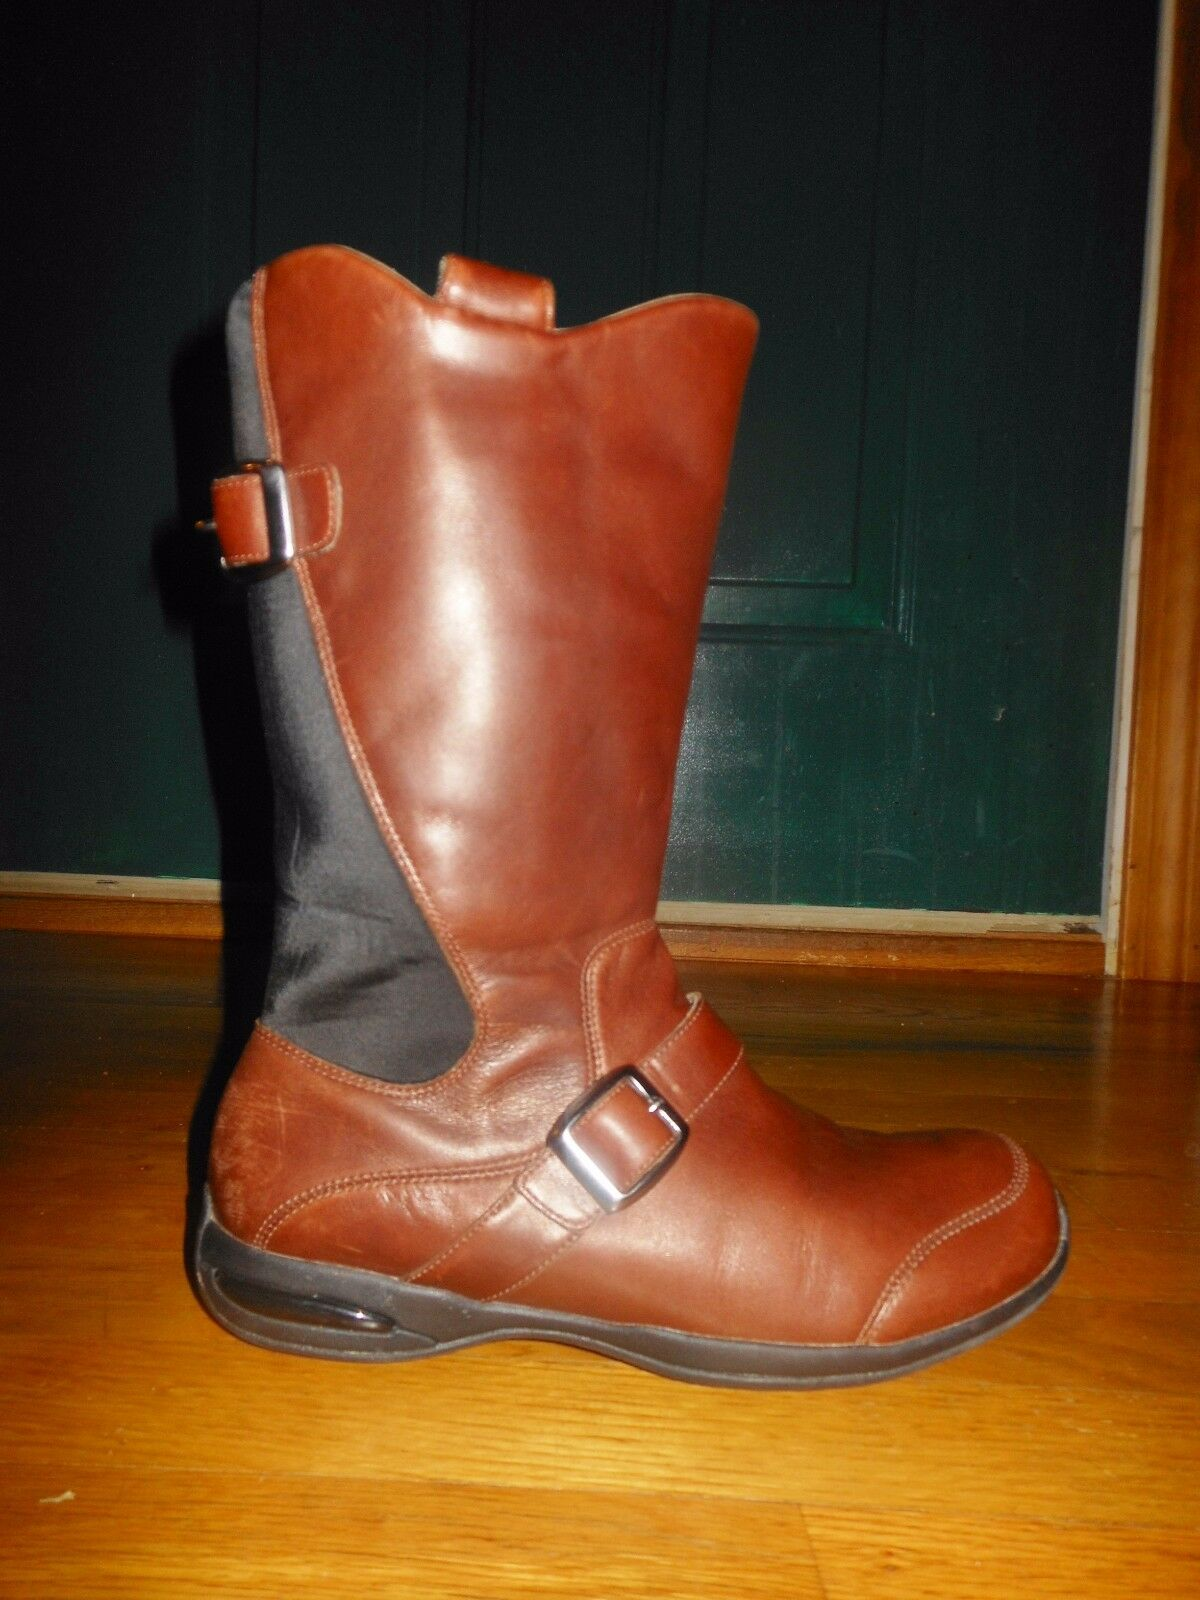 Z7 Horizon women's saddle boots - Sz 7 M - Leather - Excellent condition